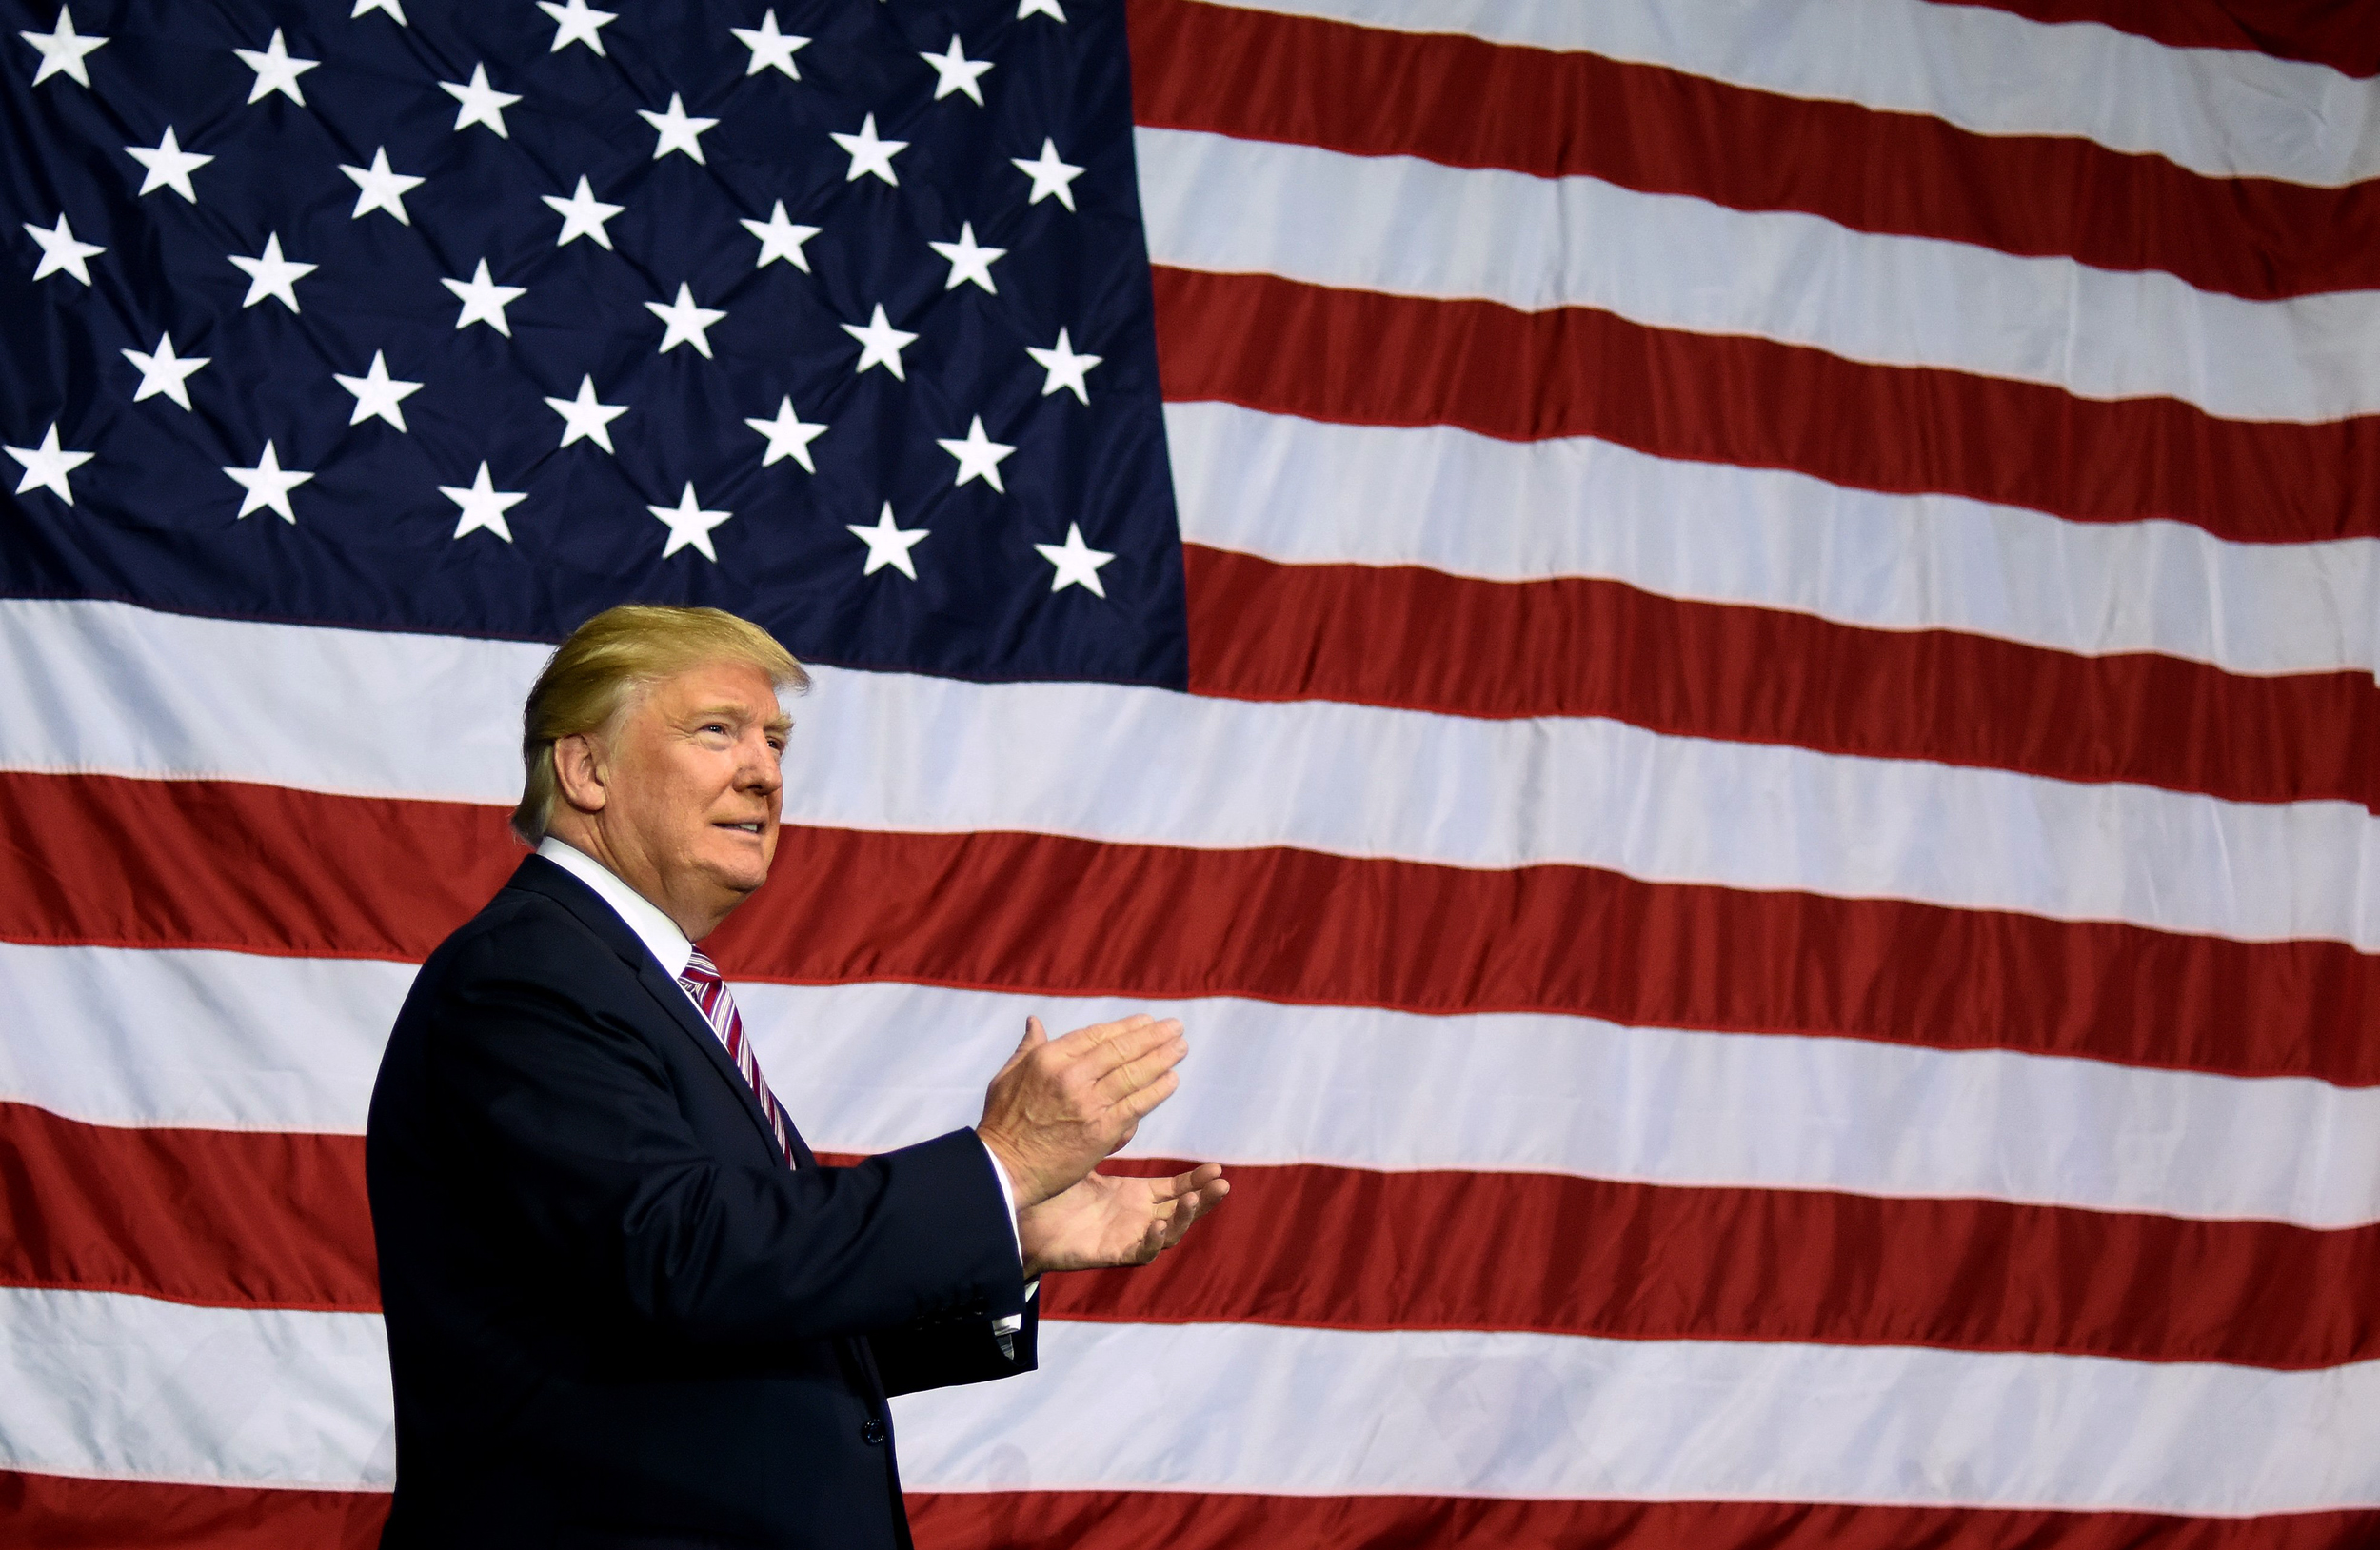 Donald Trump Proposes Two Illegal Responses to Flag Burning